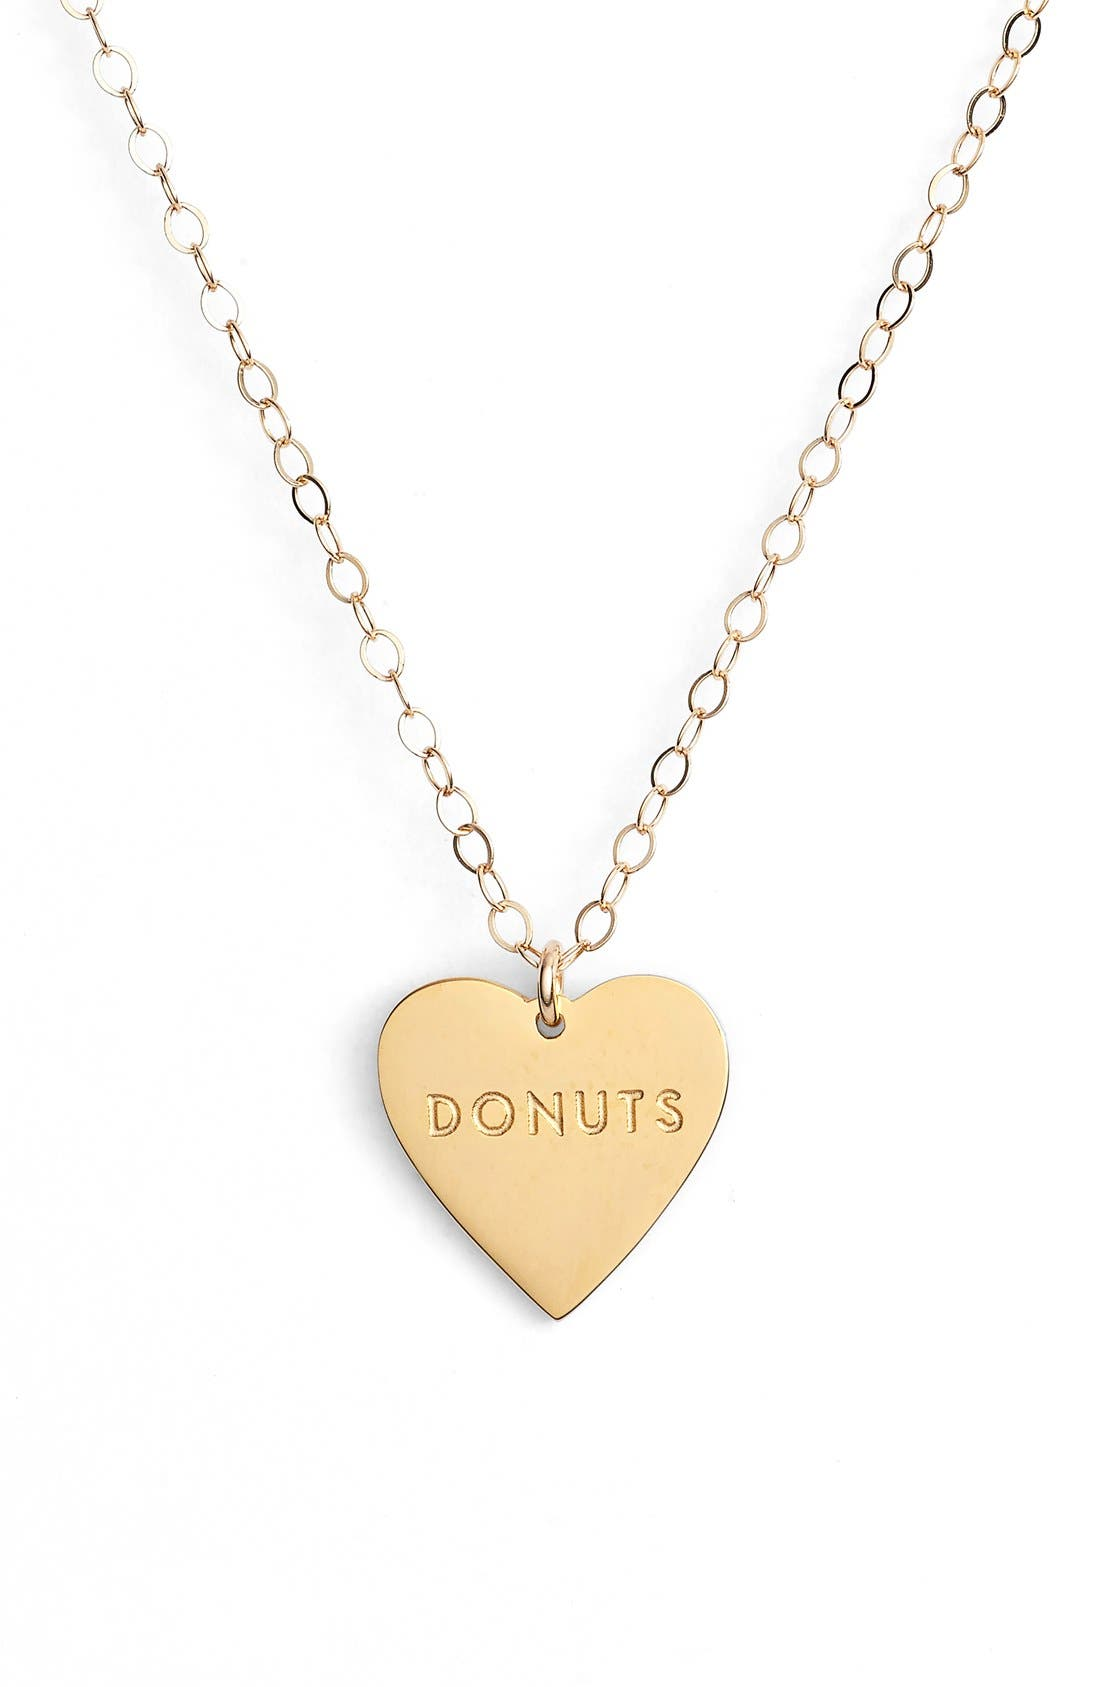 Main Image - Seoul Little 'Donuts' Charm Pendant Necklace